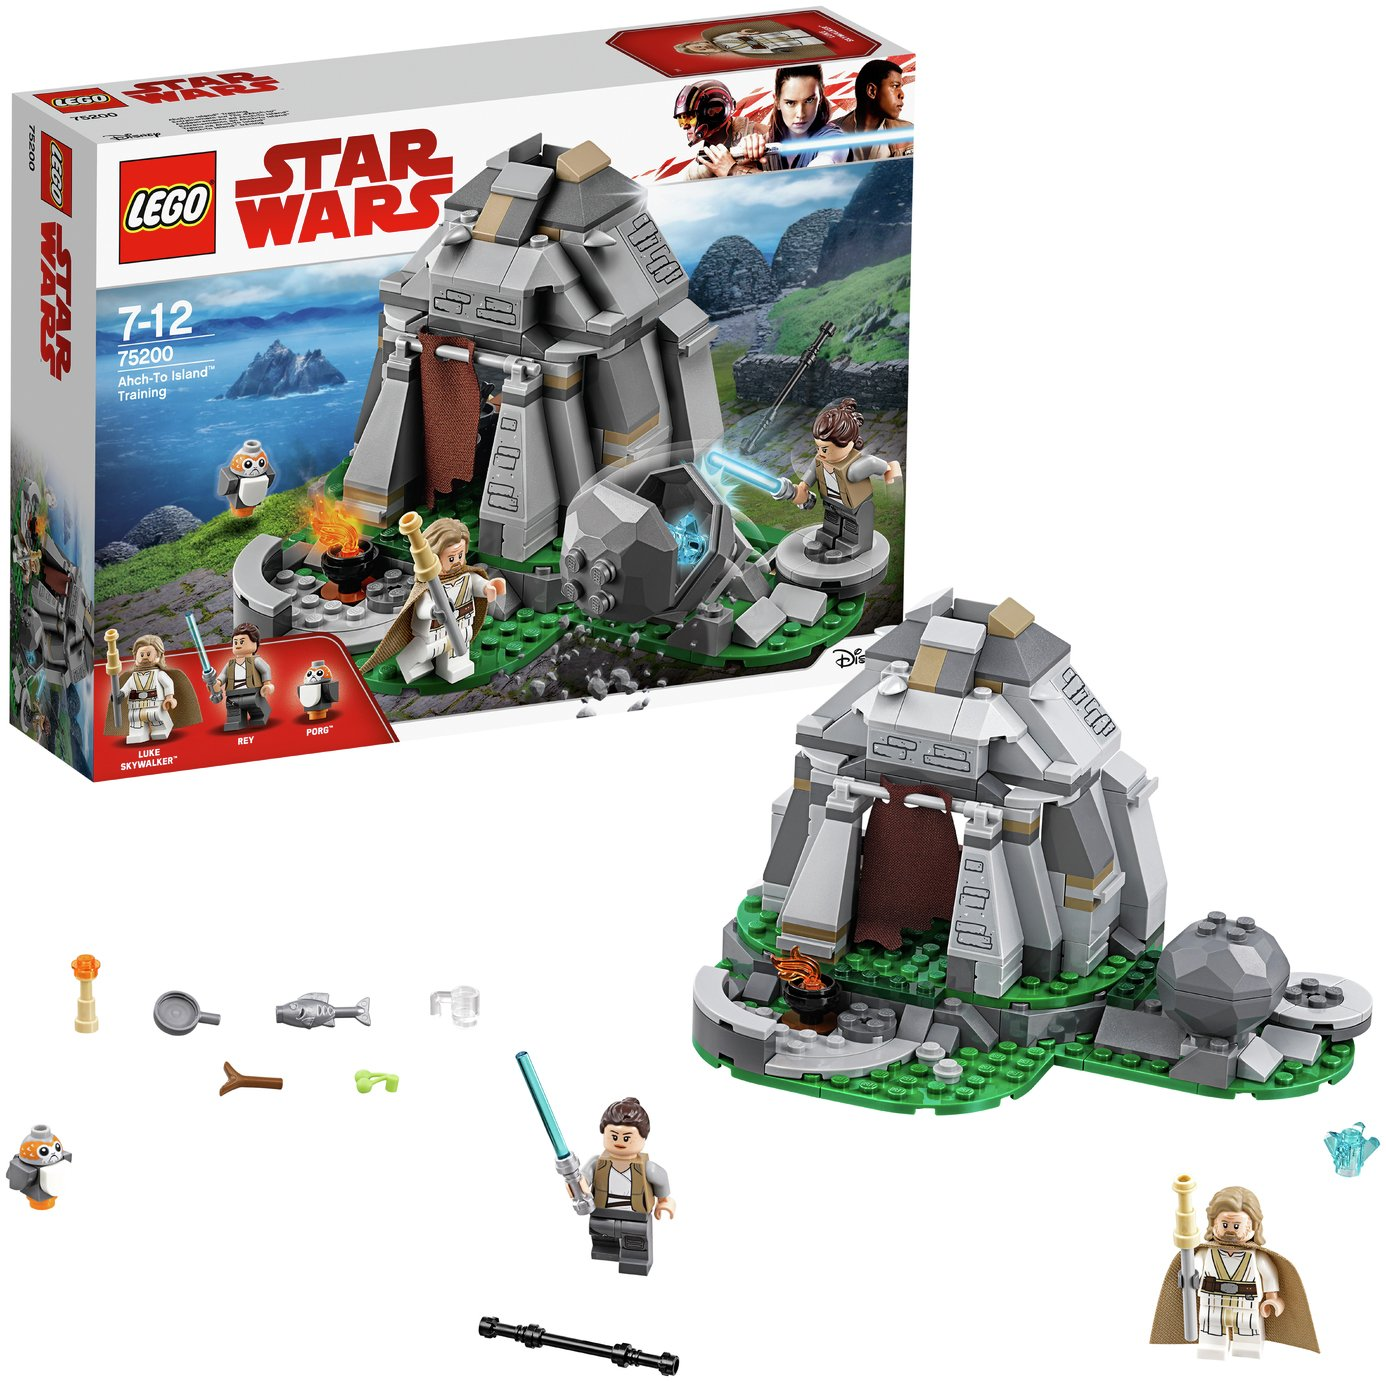 LEGO Star Wars AhchTo Island Training Building Set - 75200